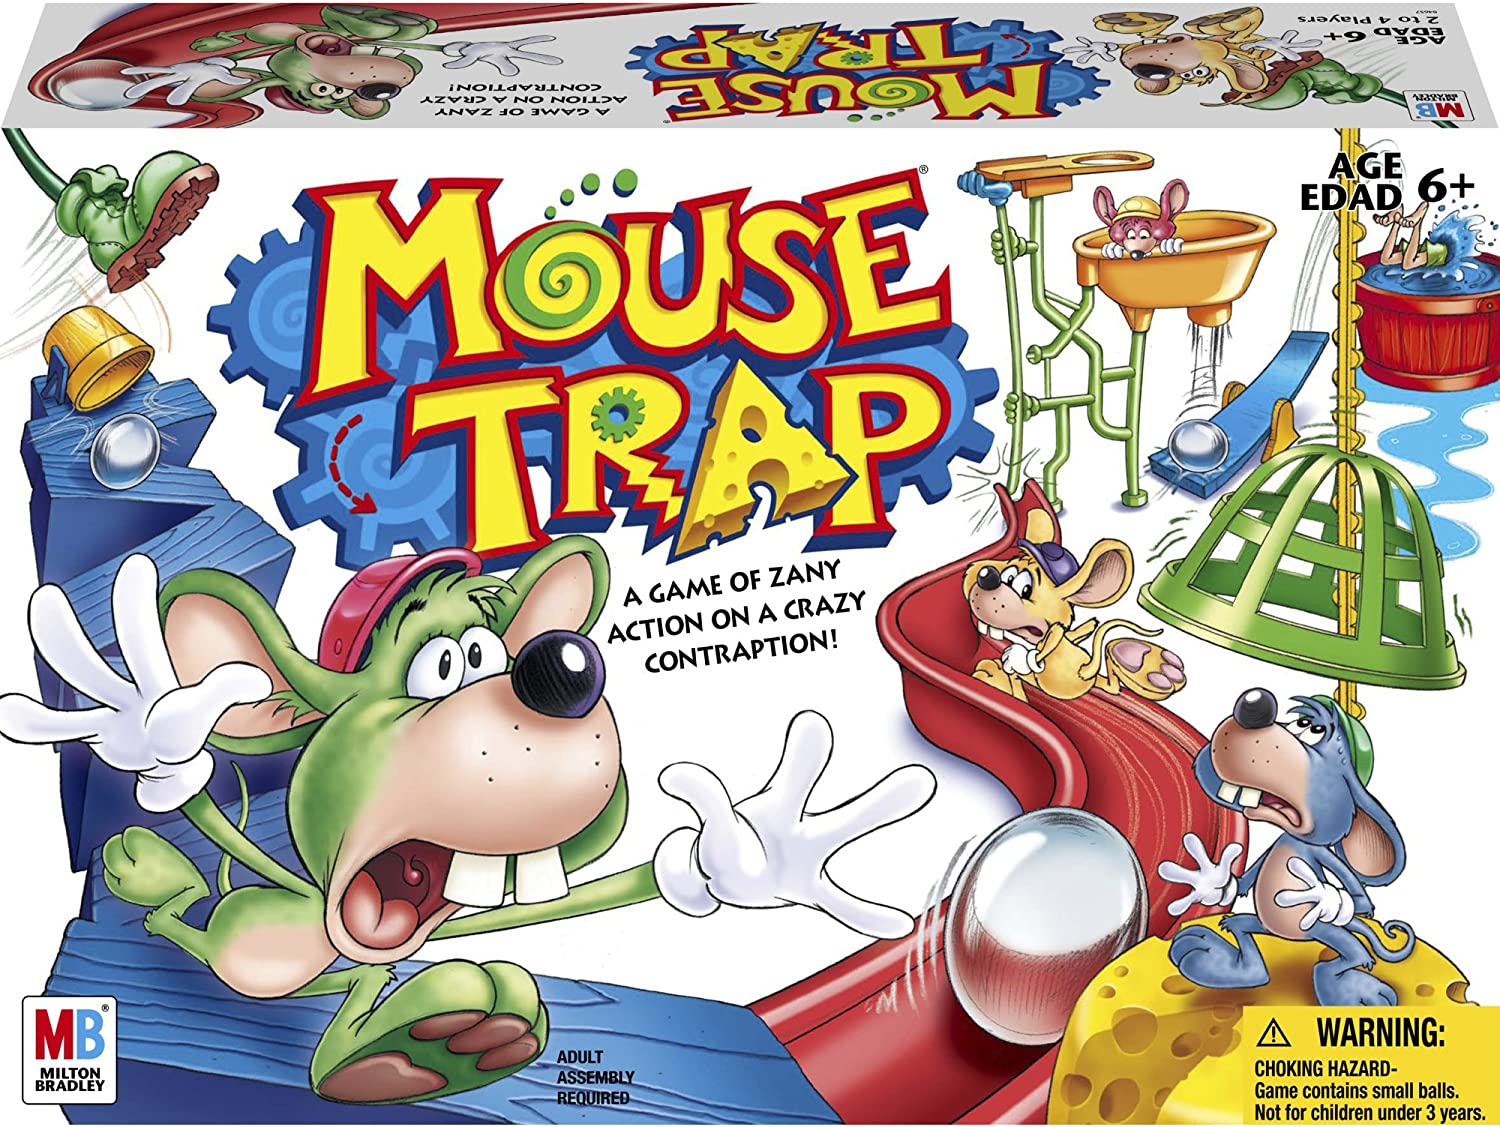 B00000DMFD Hasbro Gaming Mouse Trap Board Game For Kids Ages 6 and Up (Amazon Exclusive) 91zpYBwMRVL